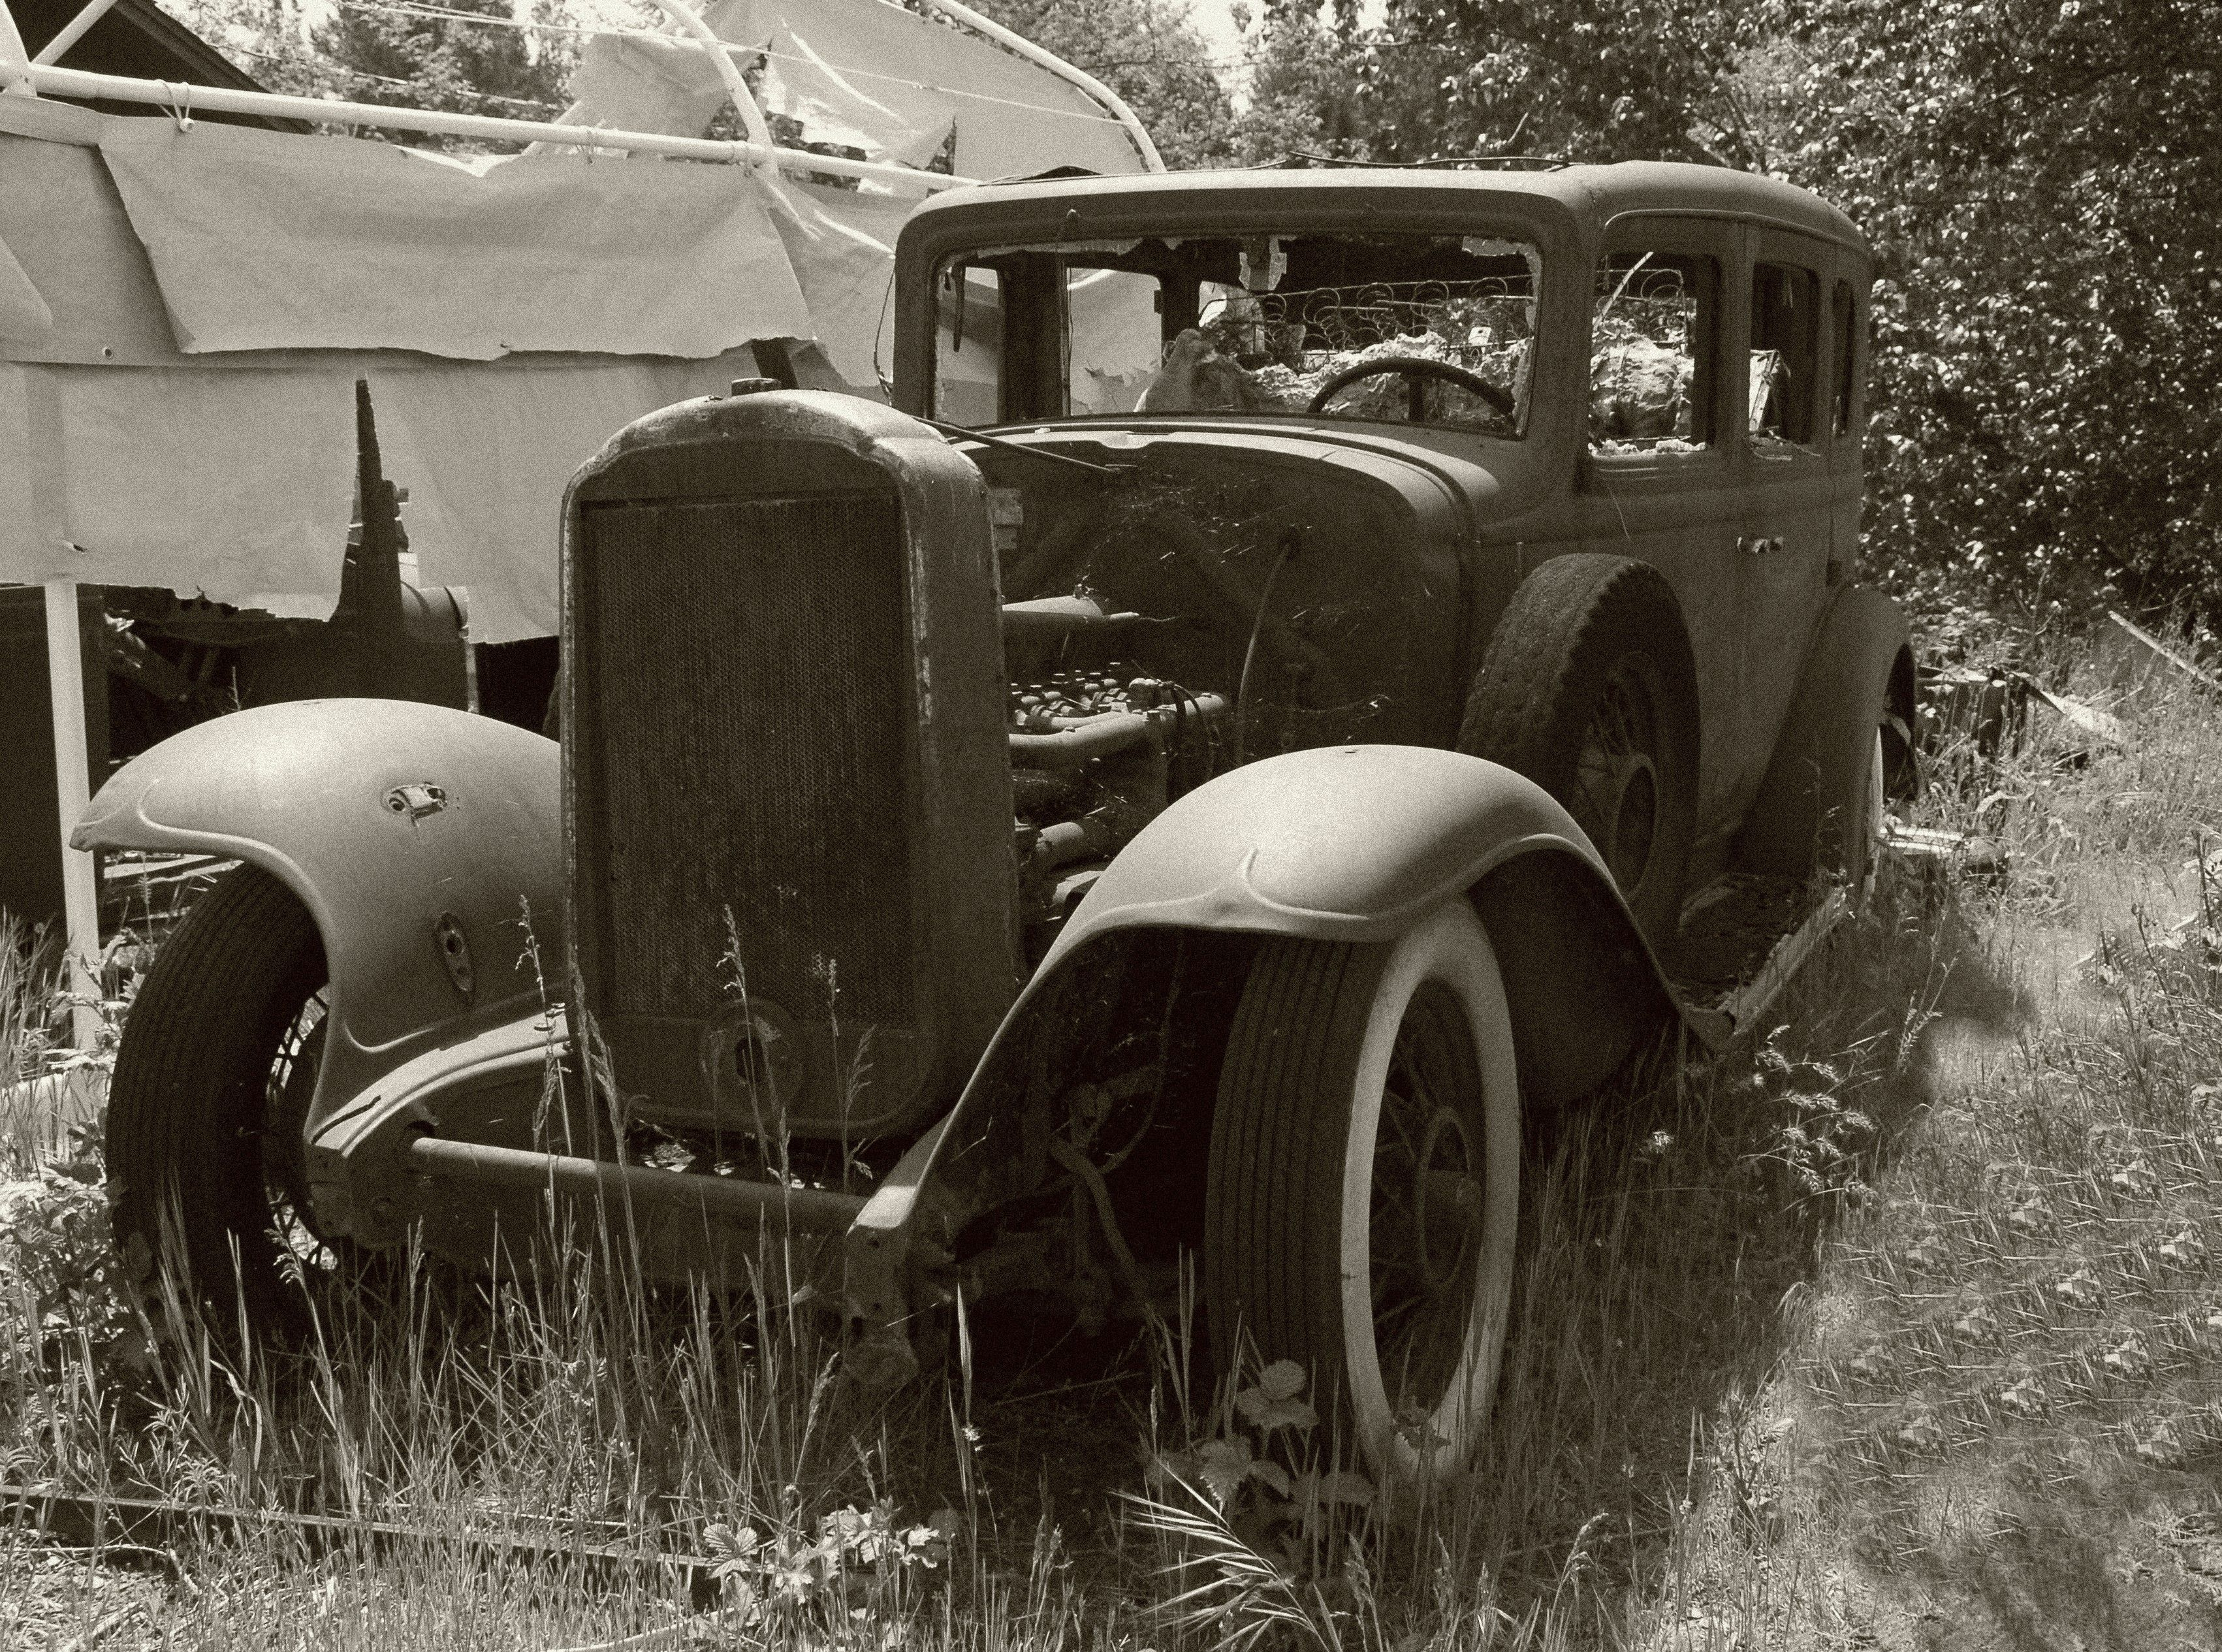 1932 Buick — Awaiting Restoration | Cars, Planes and Busses